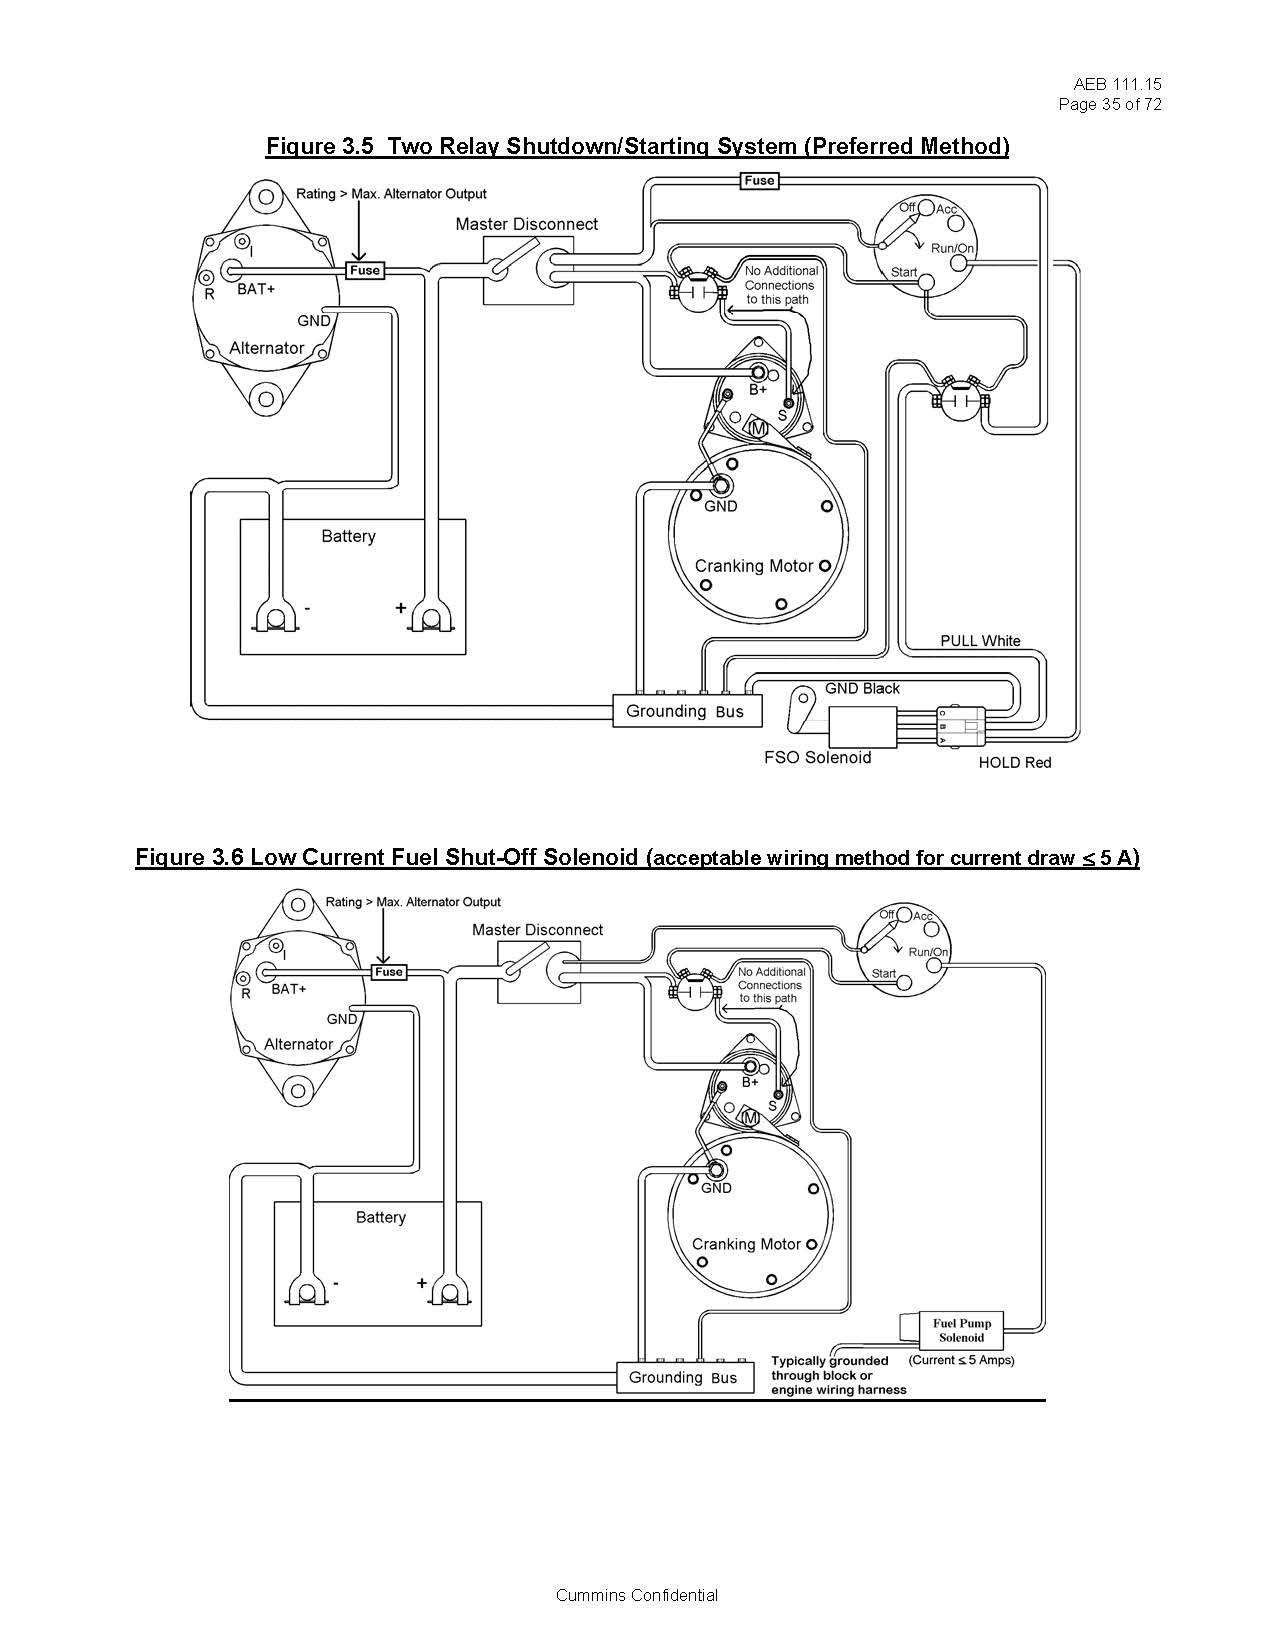 Fuel Shut Off Solenoid Wiring Harness Diagrams Diagram For Kubota L3800 Basic Shutoff And Starter Information Briggs Stratton Carburetor Cat